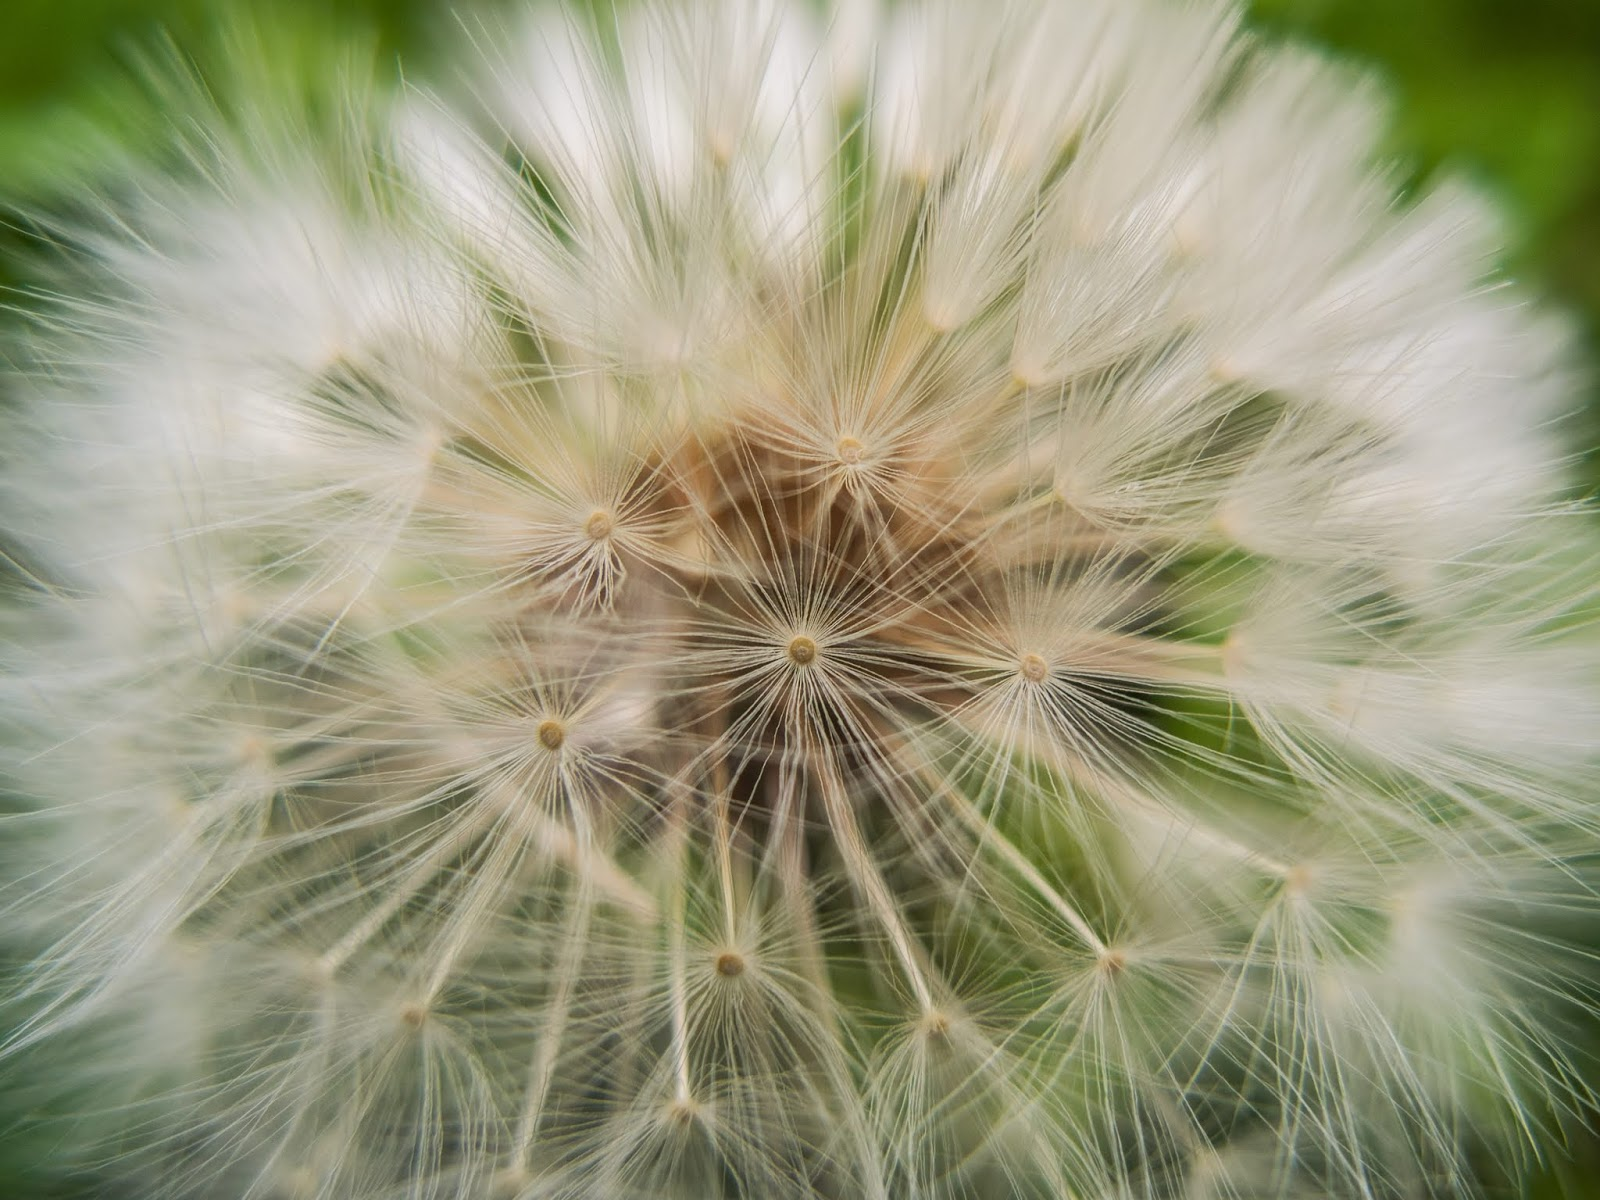 A close up of a full head of dandelion seeds.